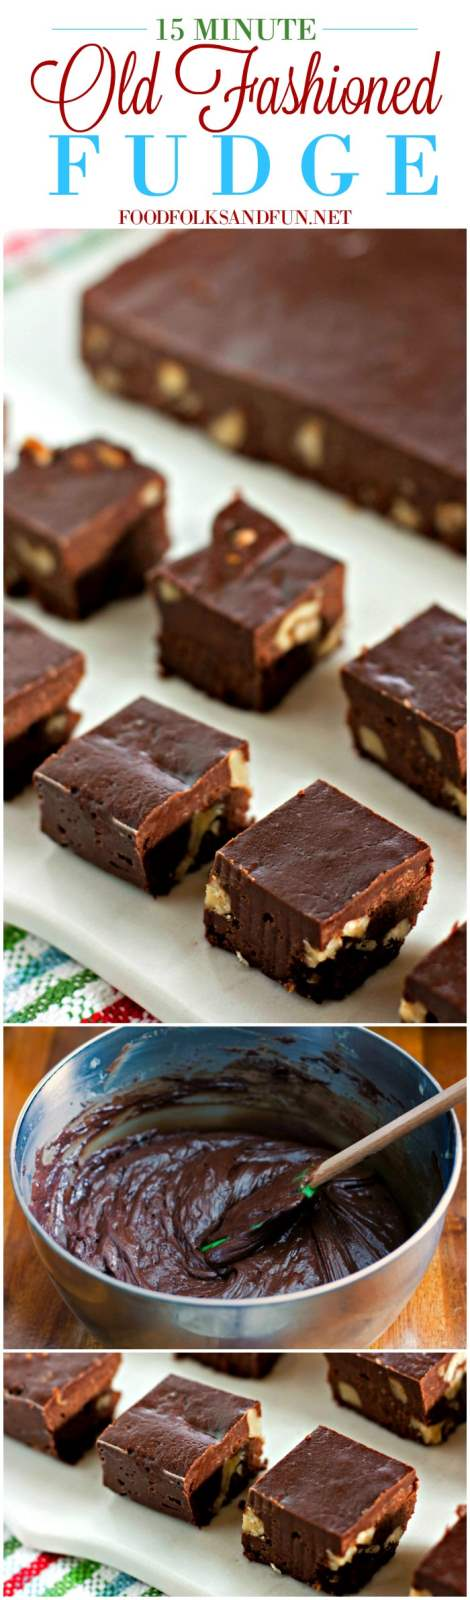 Picture collage of old fashioned fudge for Pinterest.